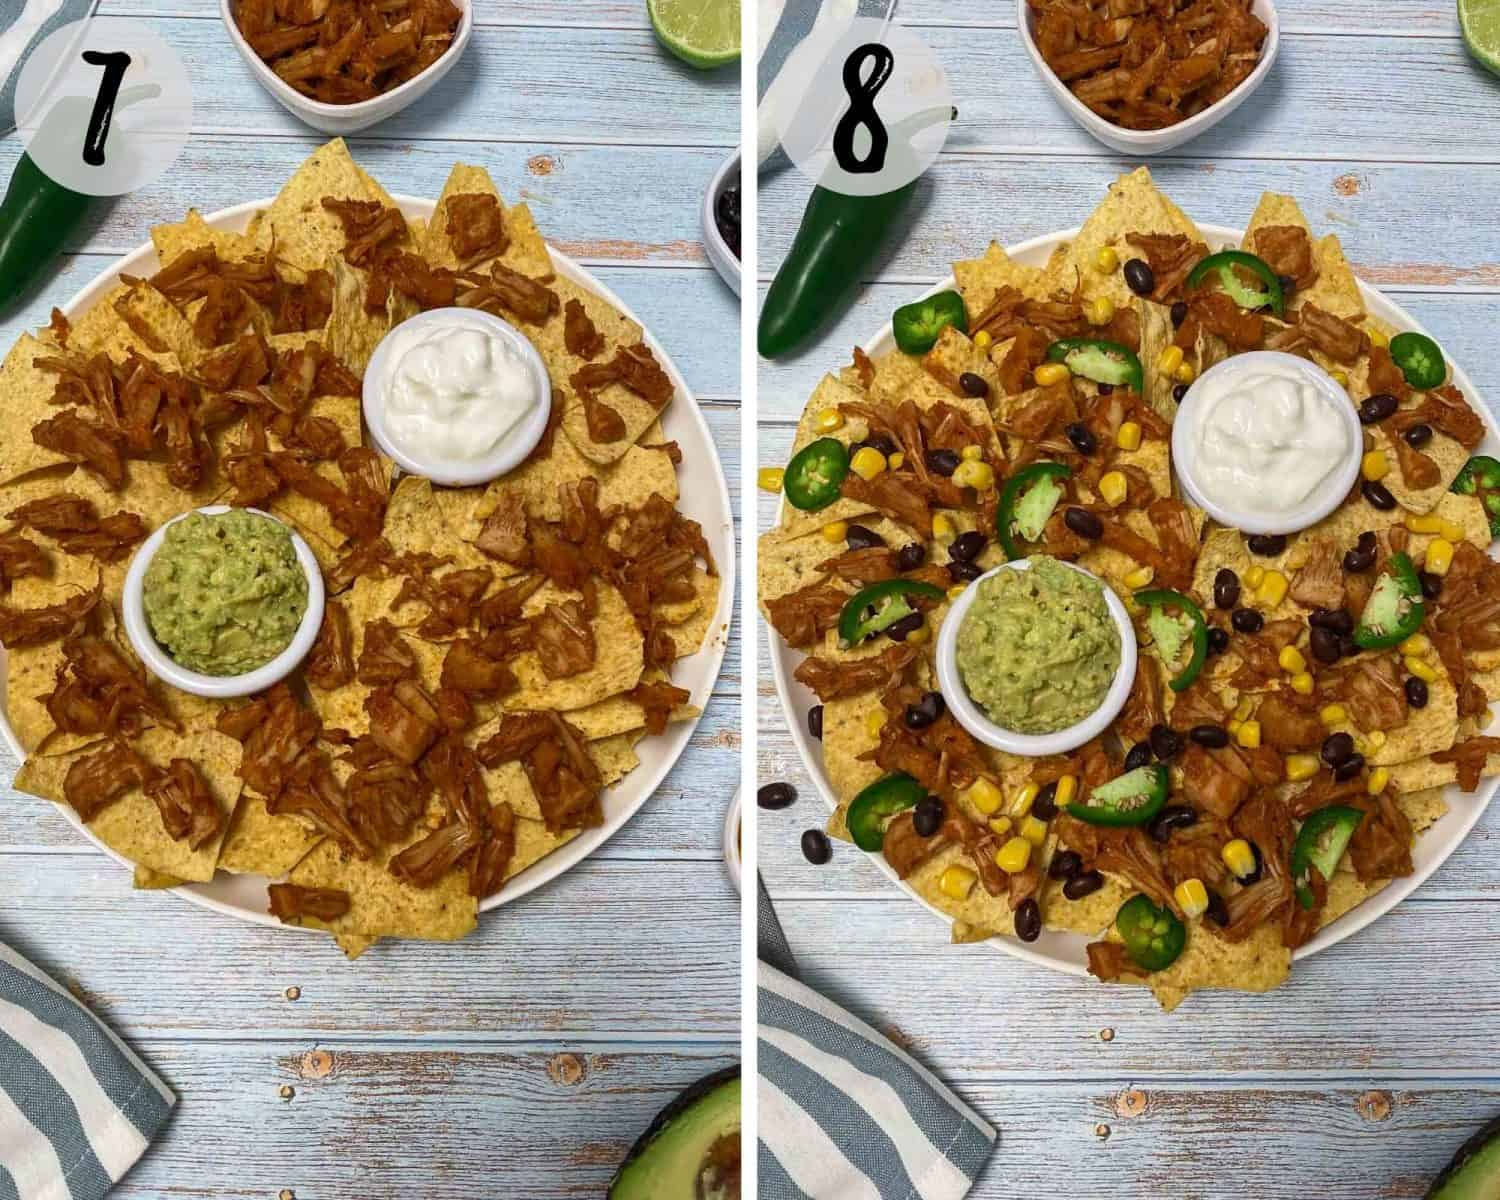 layering nacho chips with jackfruit, black beans, jalapeno and corn